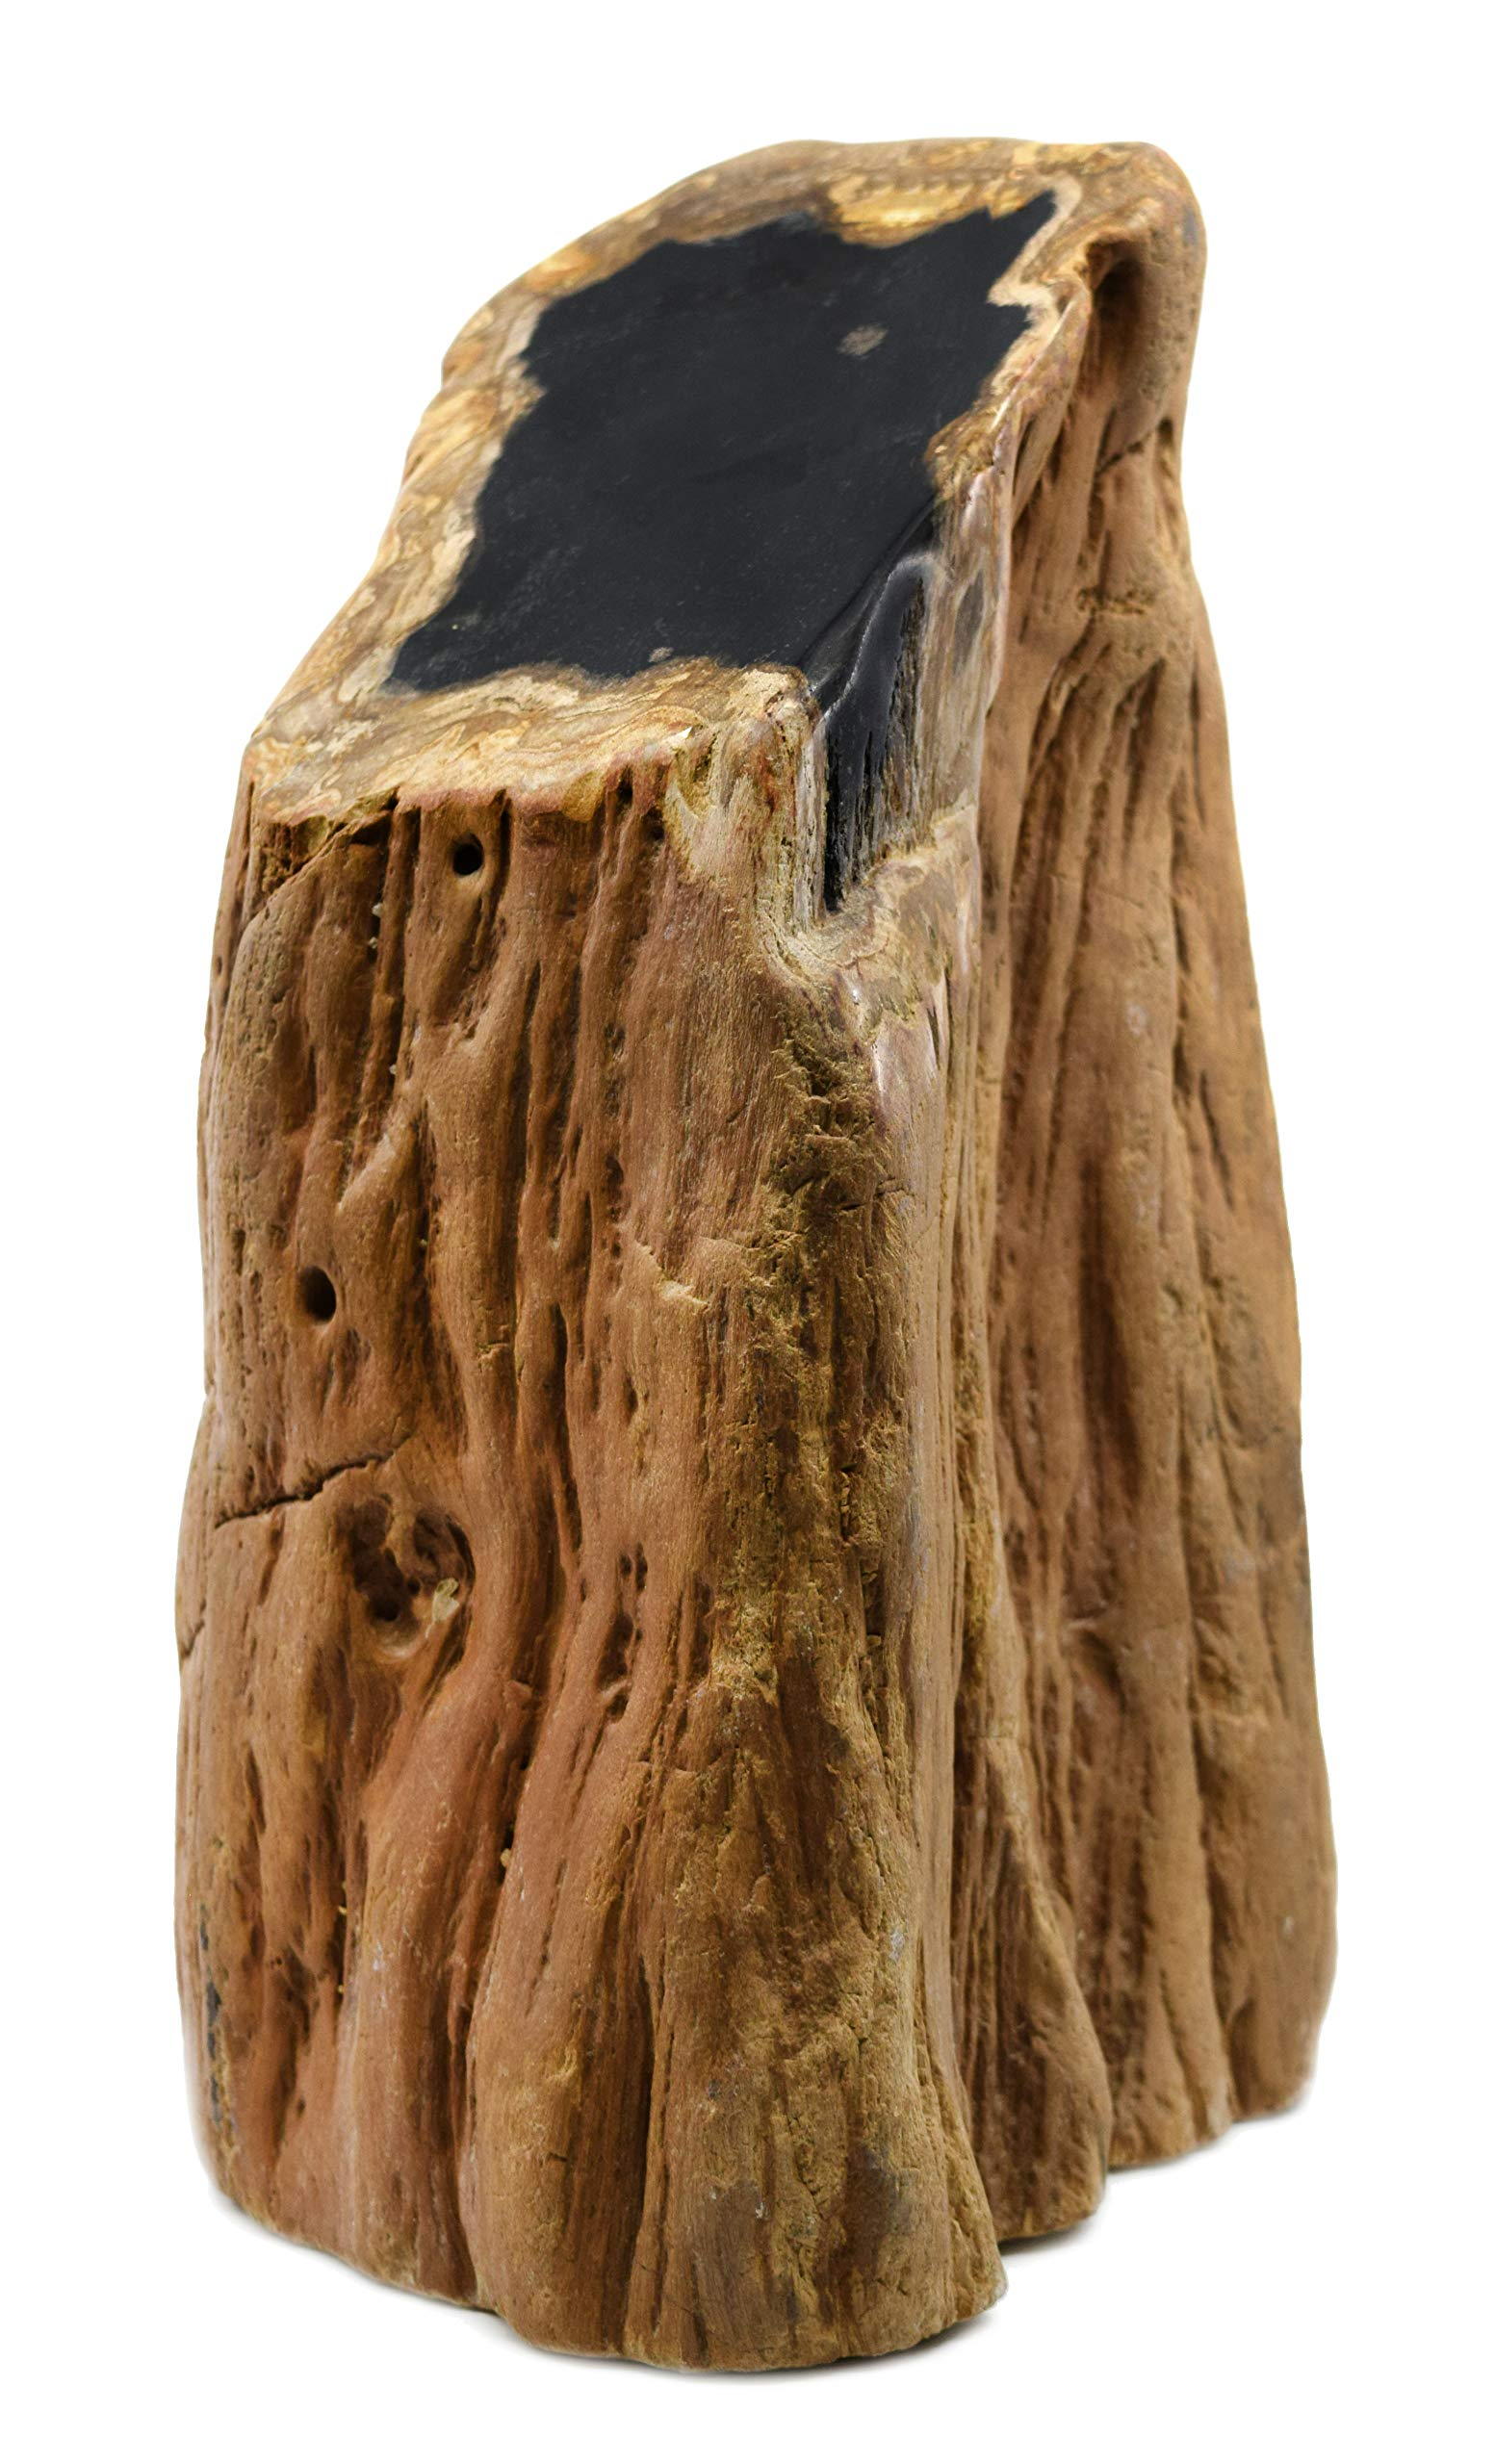 Petrified Wood, 30lbs - Freeform Piece with Polished, Angled Cross Section Cut - 100% Authentic Fossilized Wood - The Artisan Mined Series by hBAR